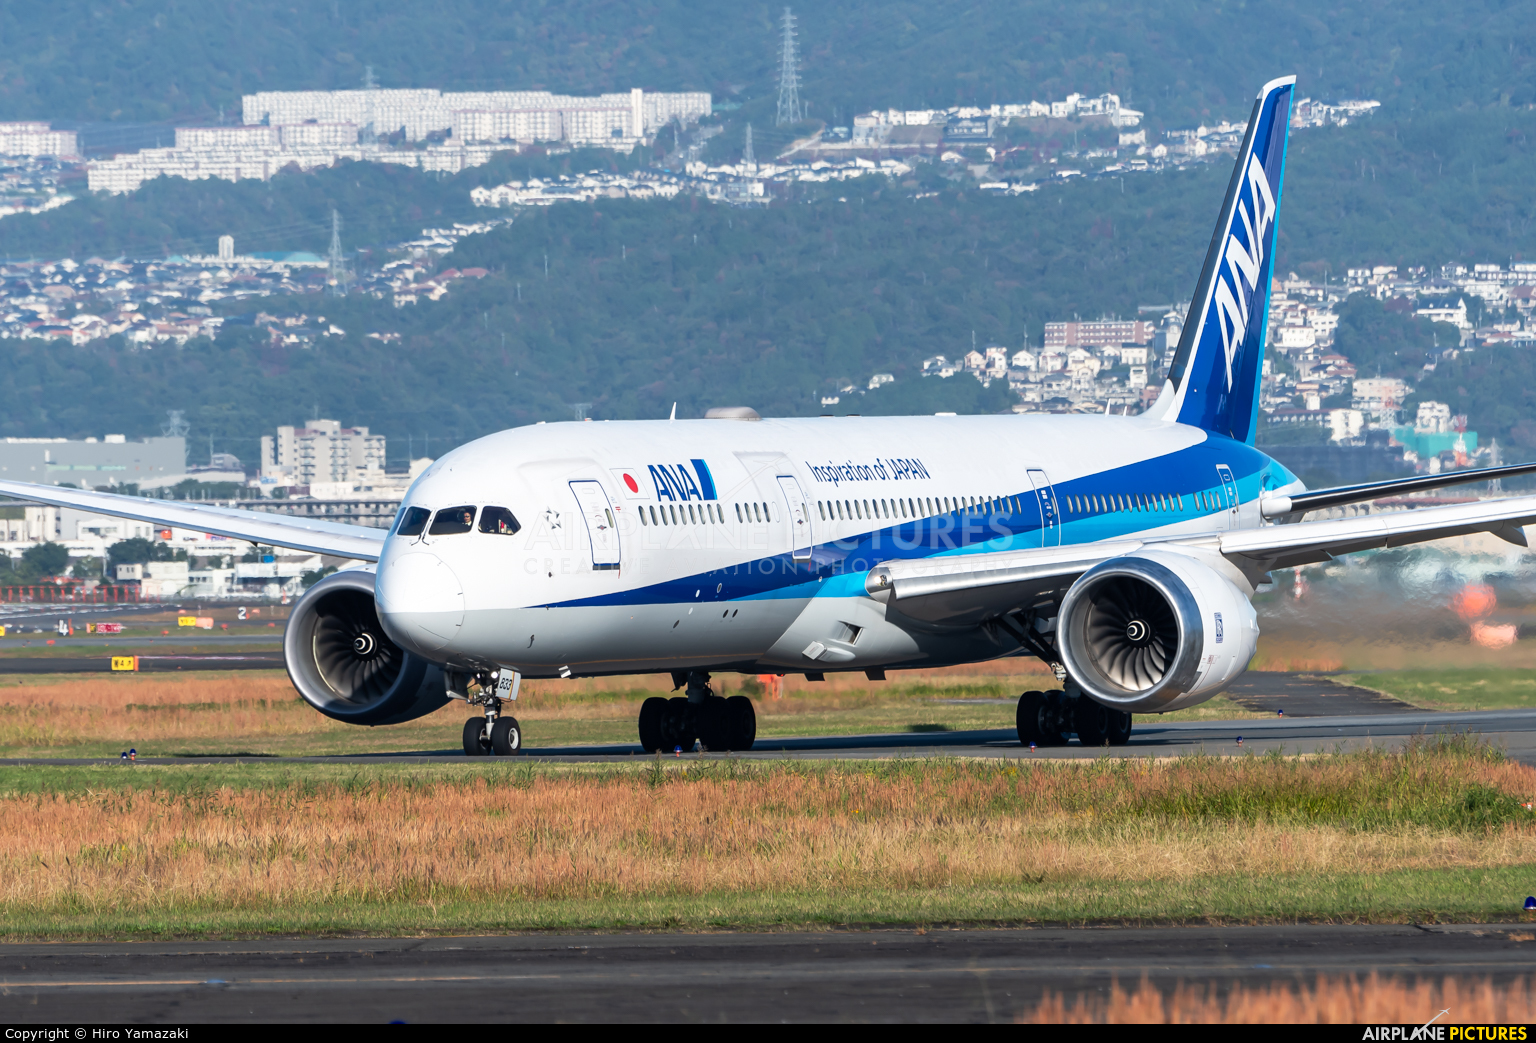 ANA - All Nippon Airways JA833A aircraft at Osaka - Itami Intl